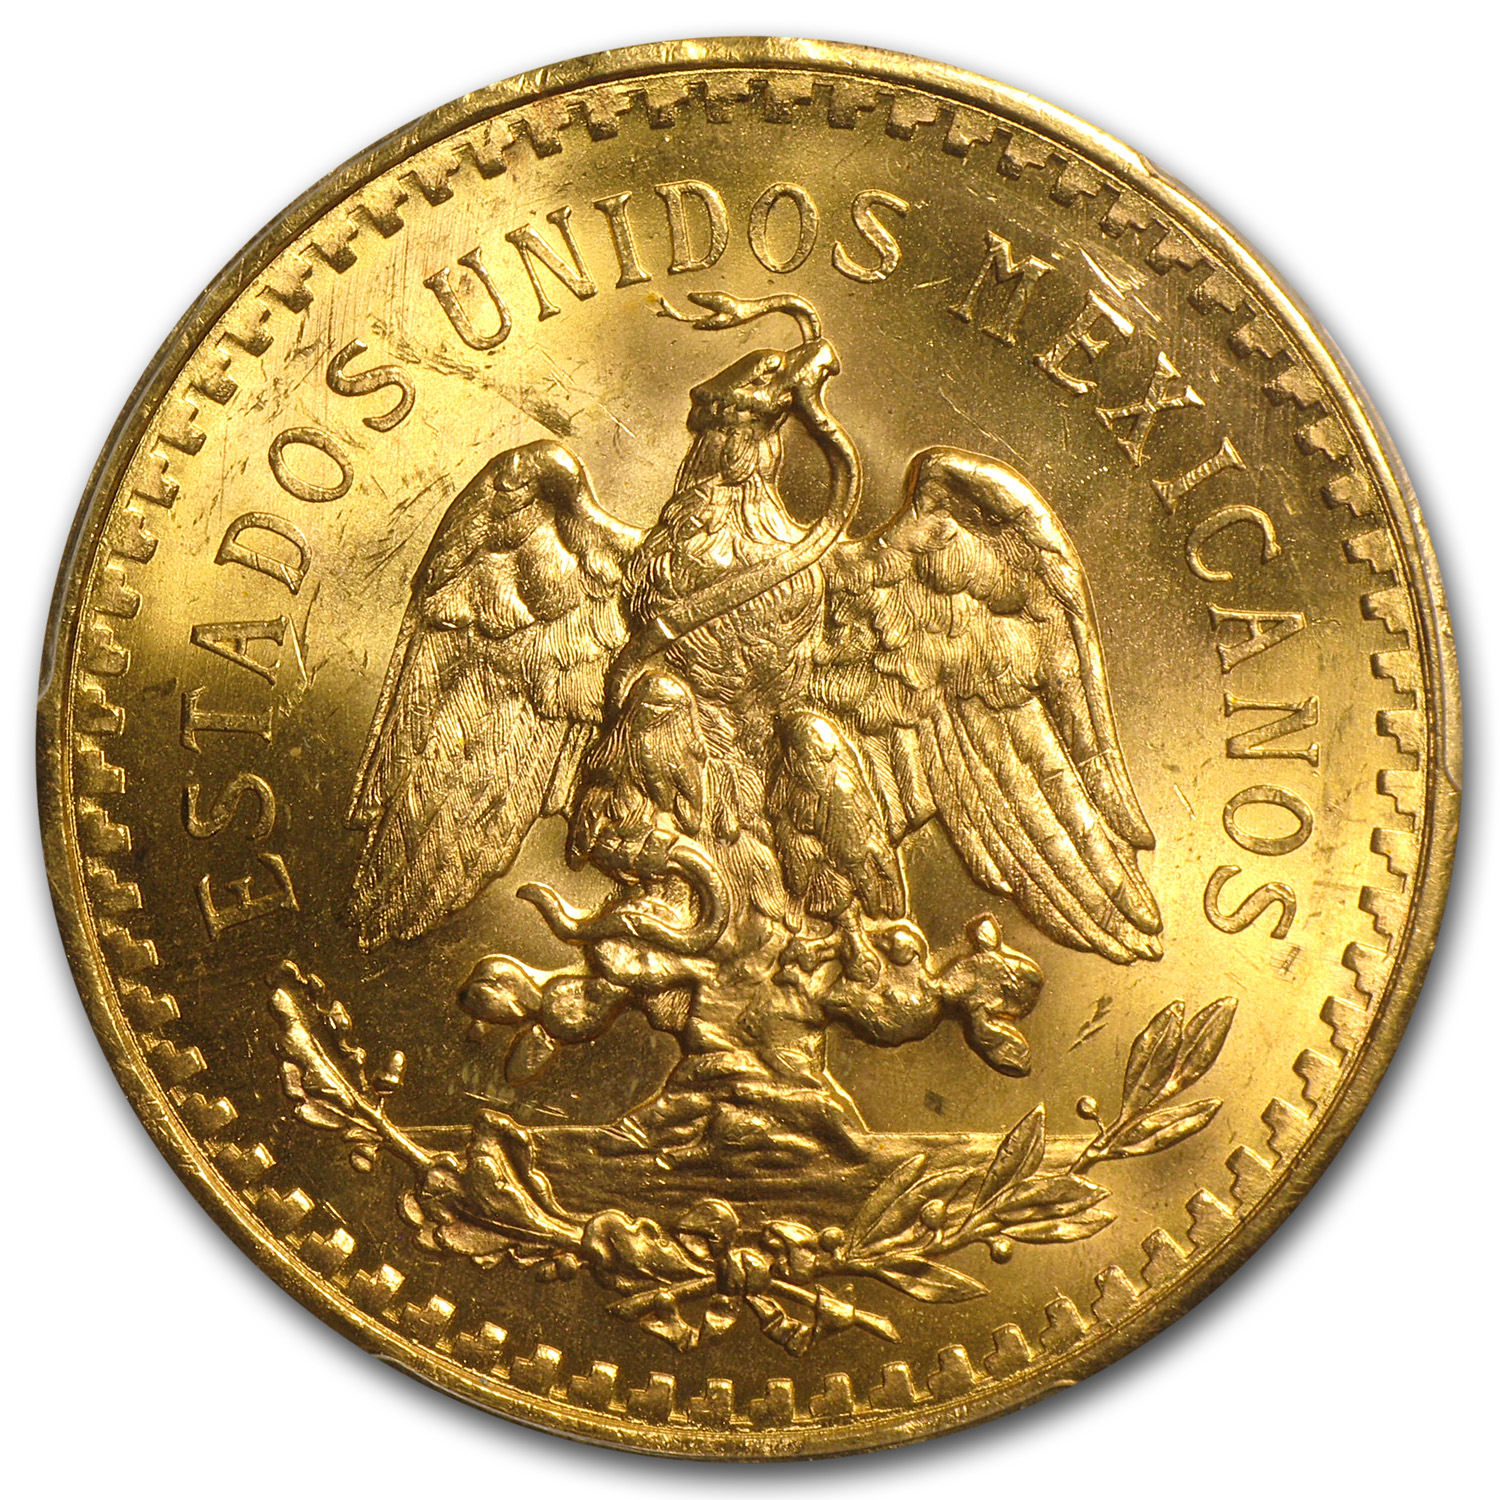 Mexico 1943 50 Pesos Gold Coin - MS-65 PCGS